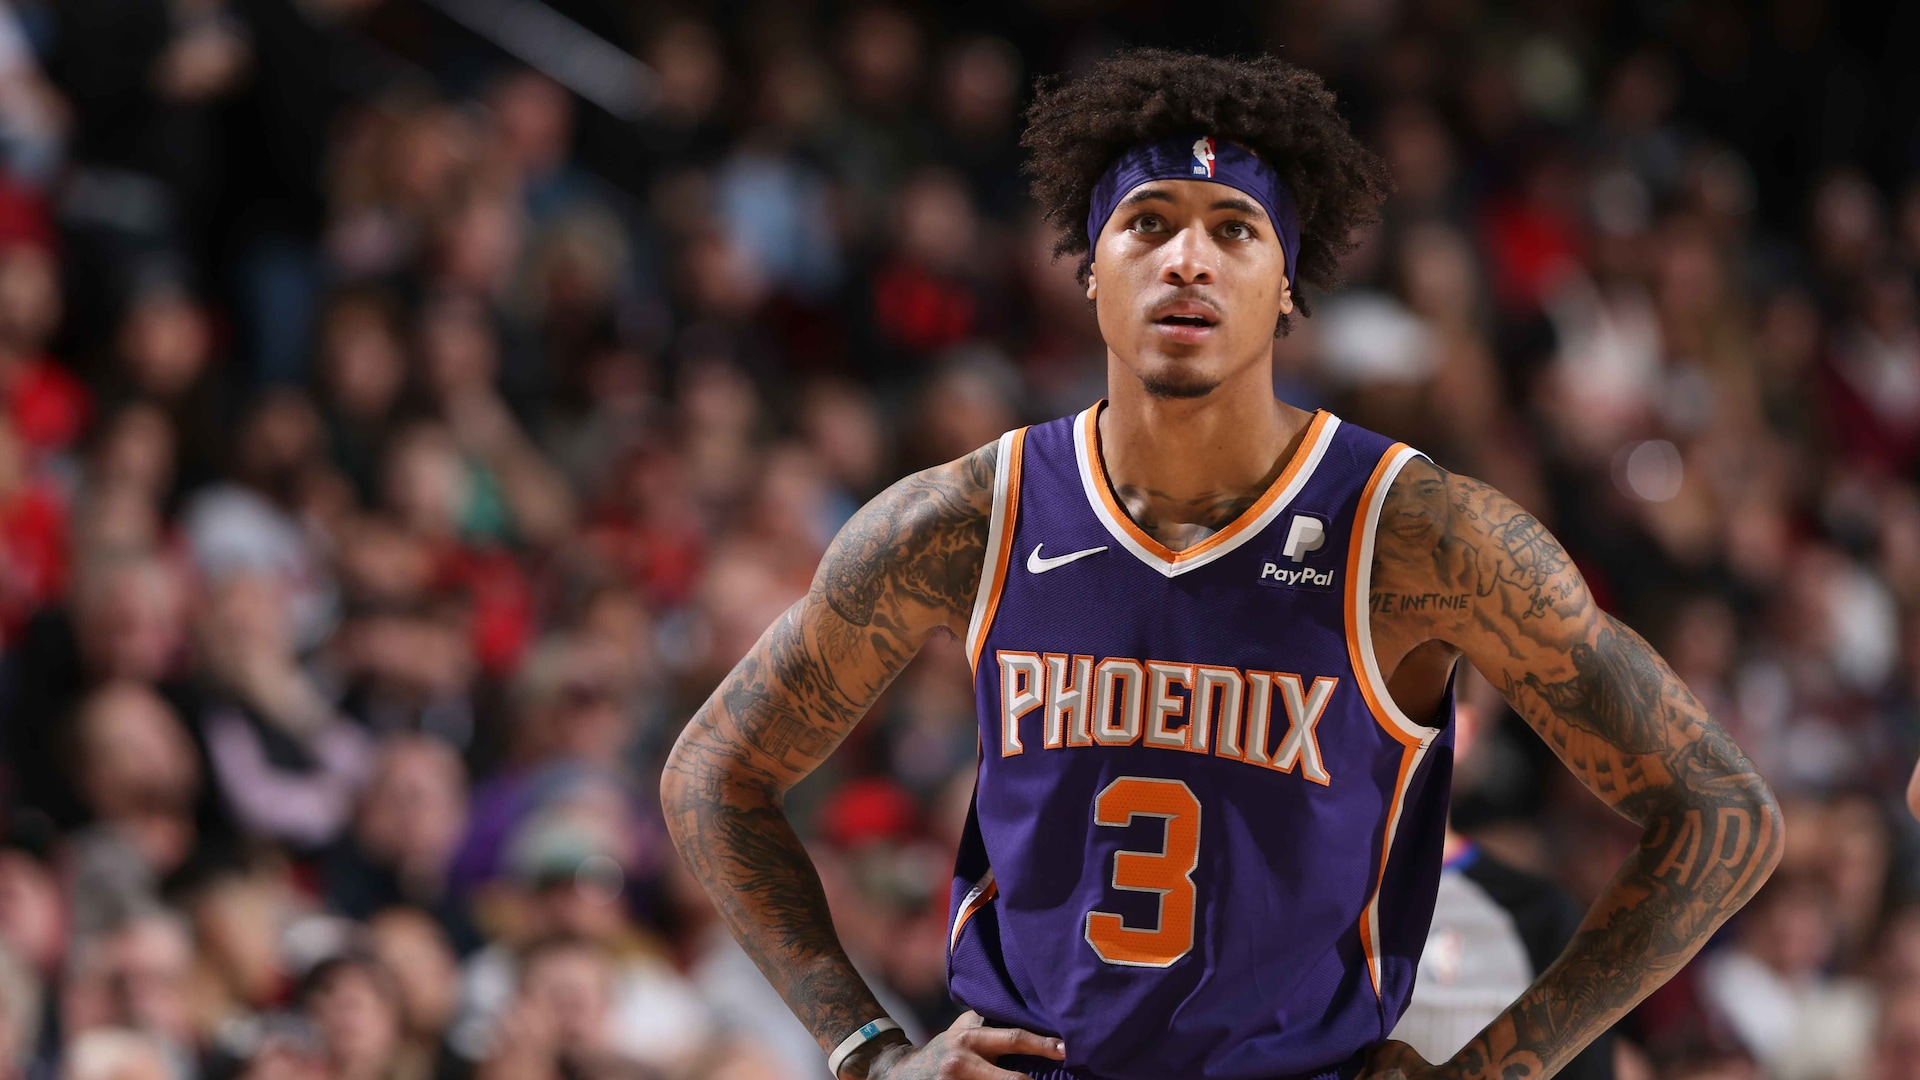 Report: Suns forward Kelly Oubre Jr. suffers torn meniscus in right knee